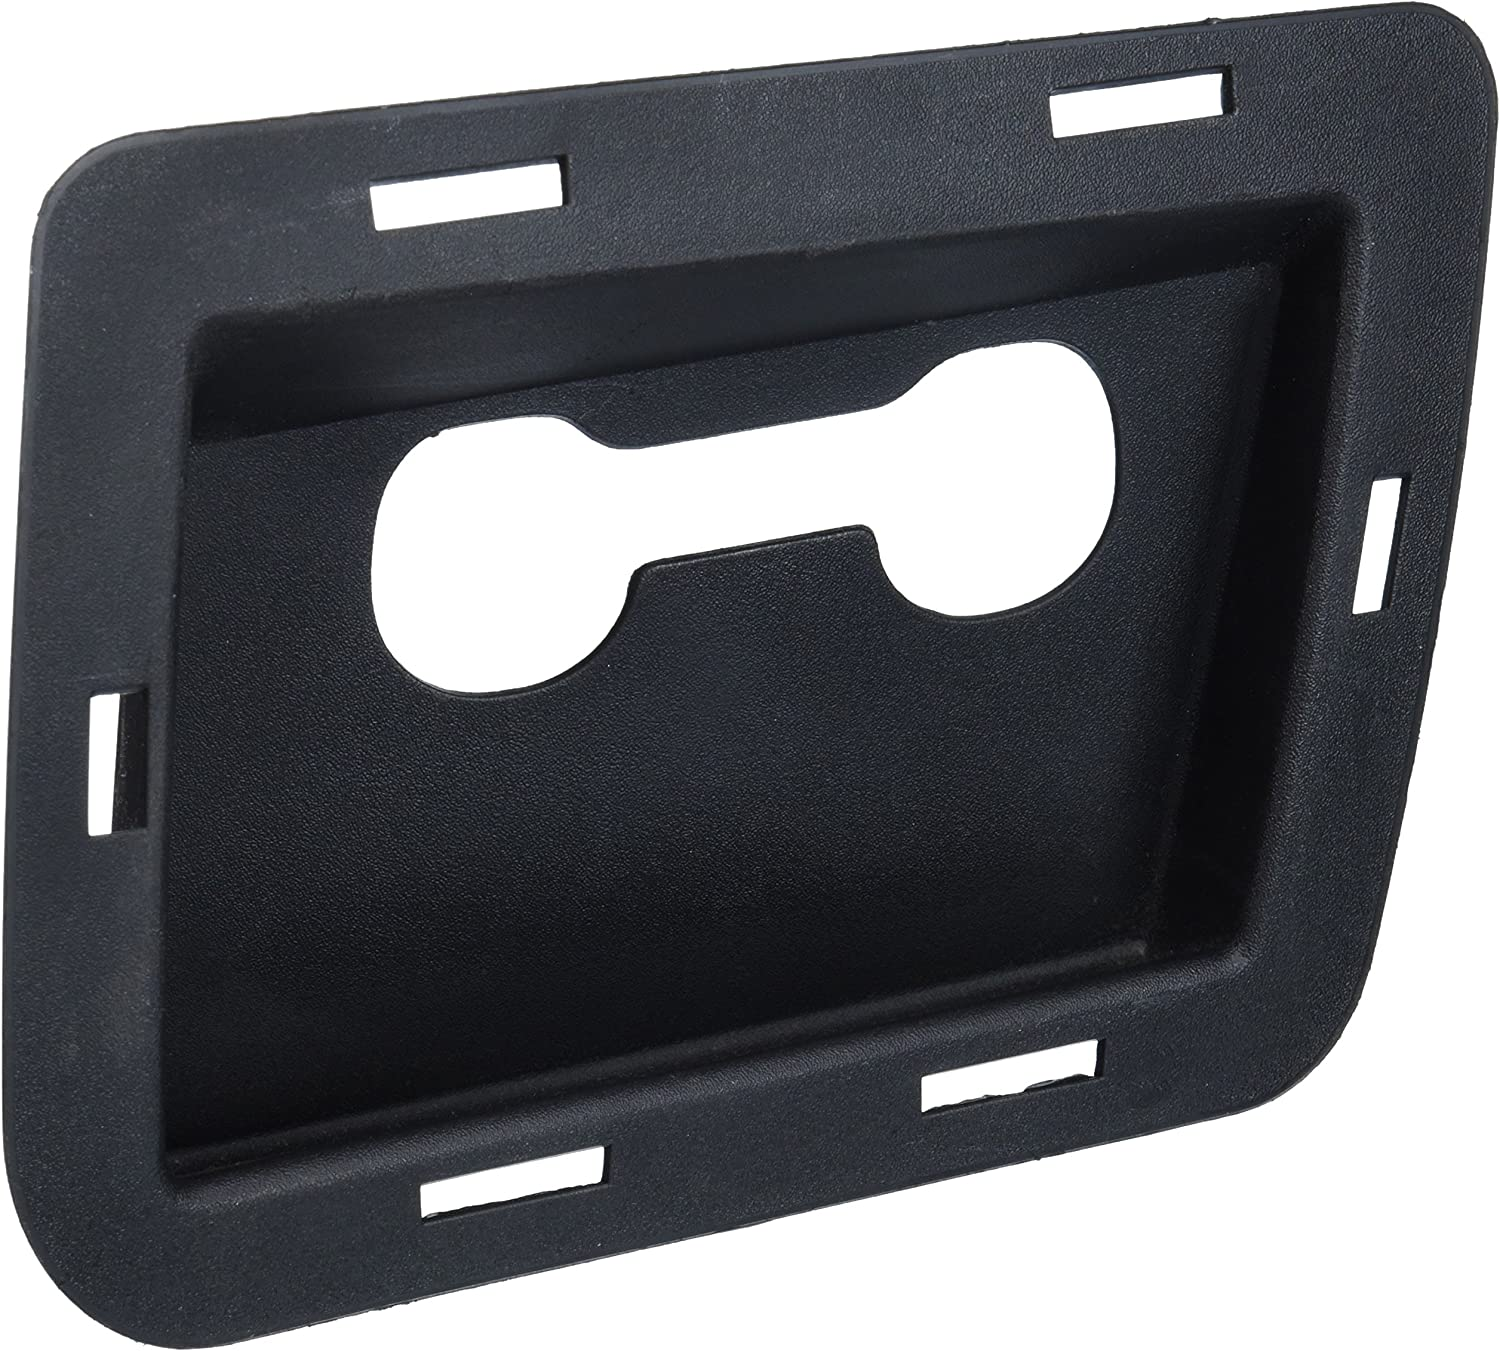 GM Genuine 15893973 Tow Hook Opening Cover Right Front